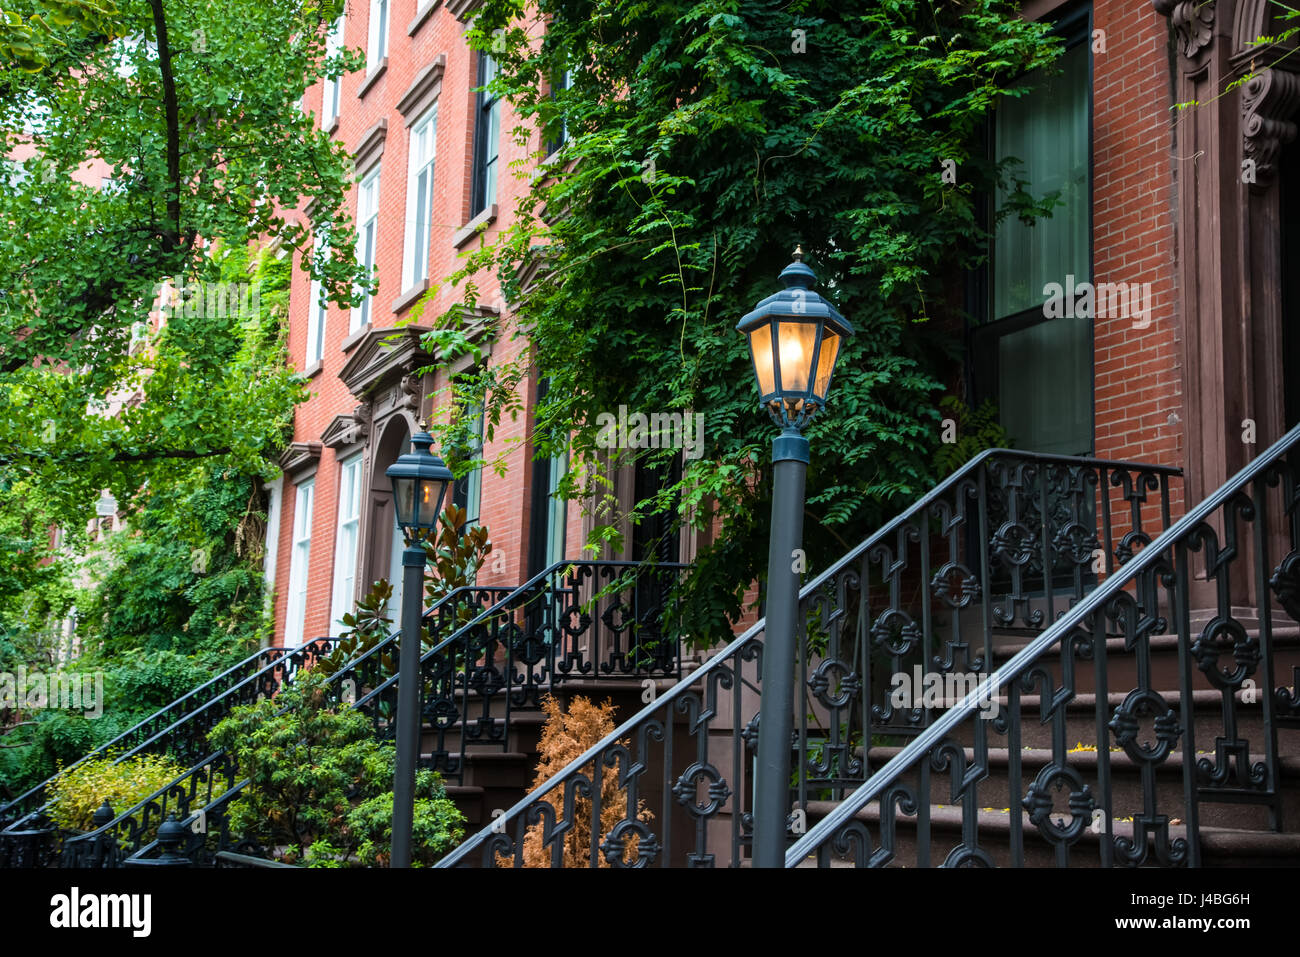 vintage lamp post near old apartment buildings in greenwich village